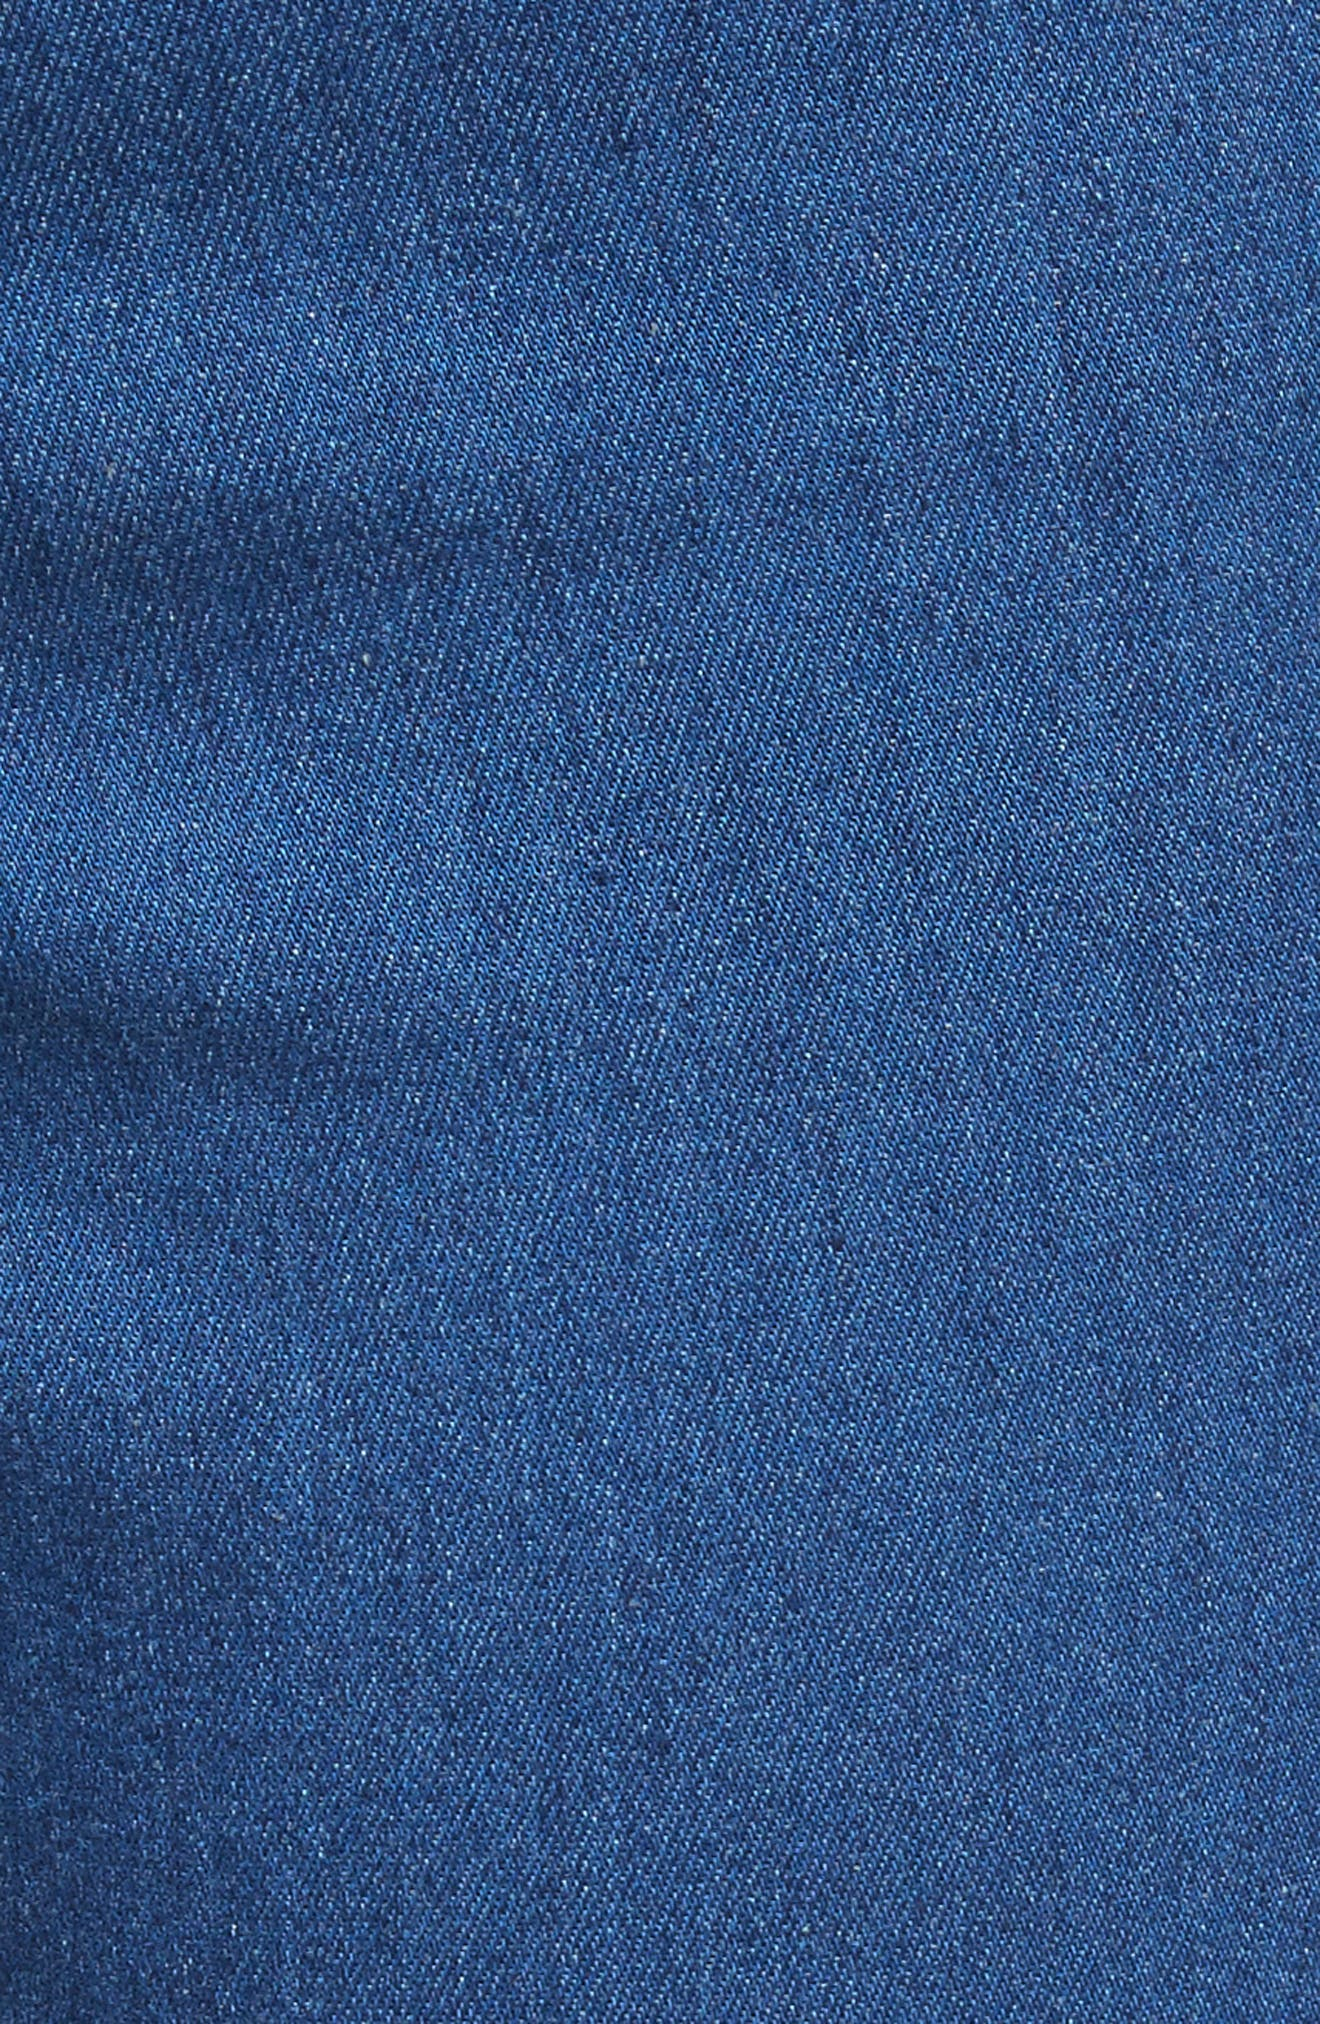 Kayleigh Bell Jeans,                             Alternate thumbnail 5, color,                             French Blue Multi